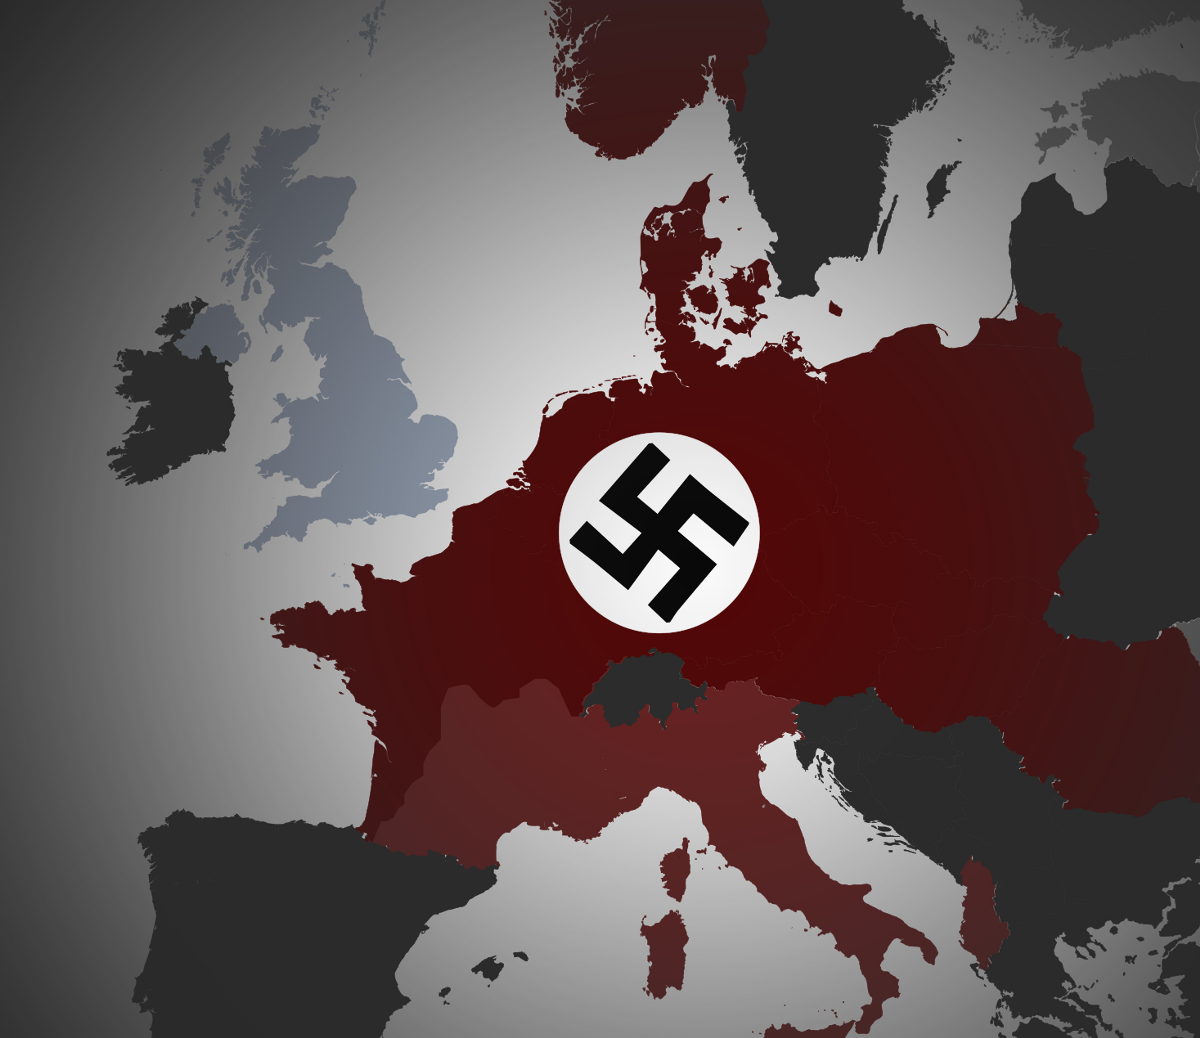 Nazi Map Of Europe.The Powerful Neo Nazi Network Destroying The European Union From Within